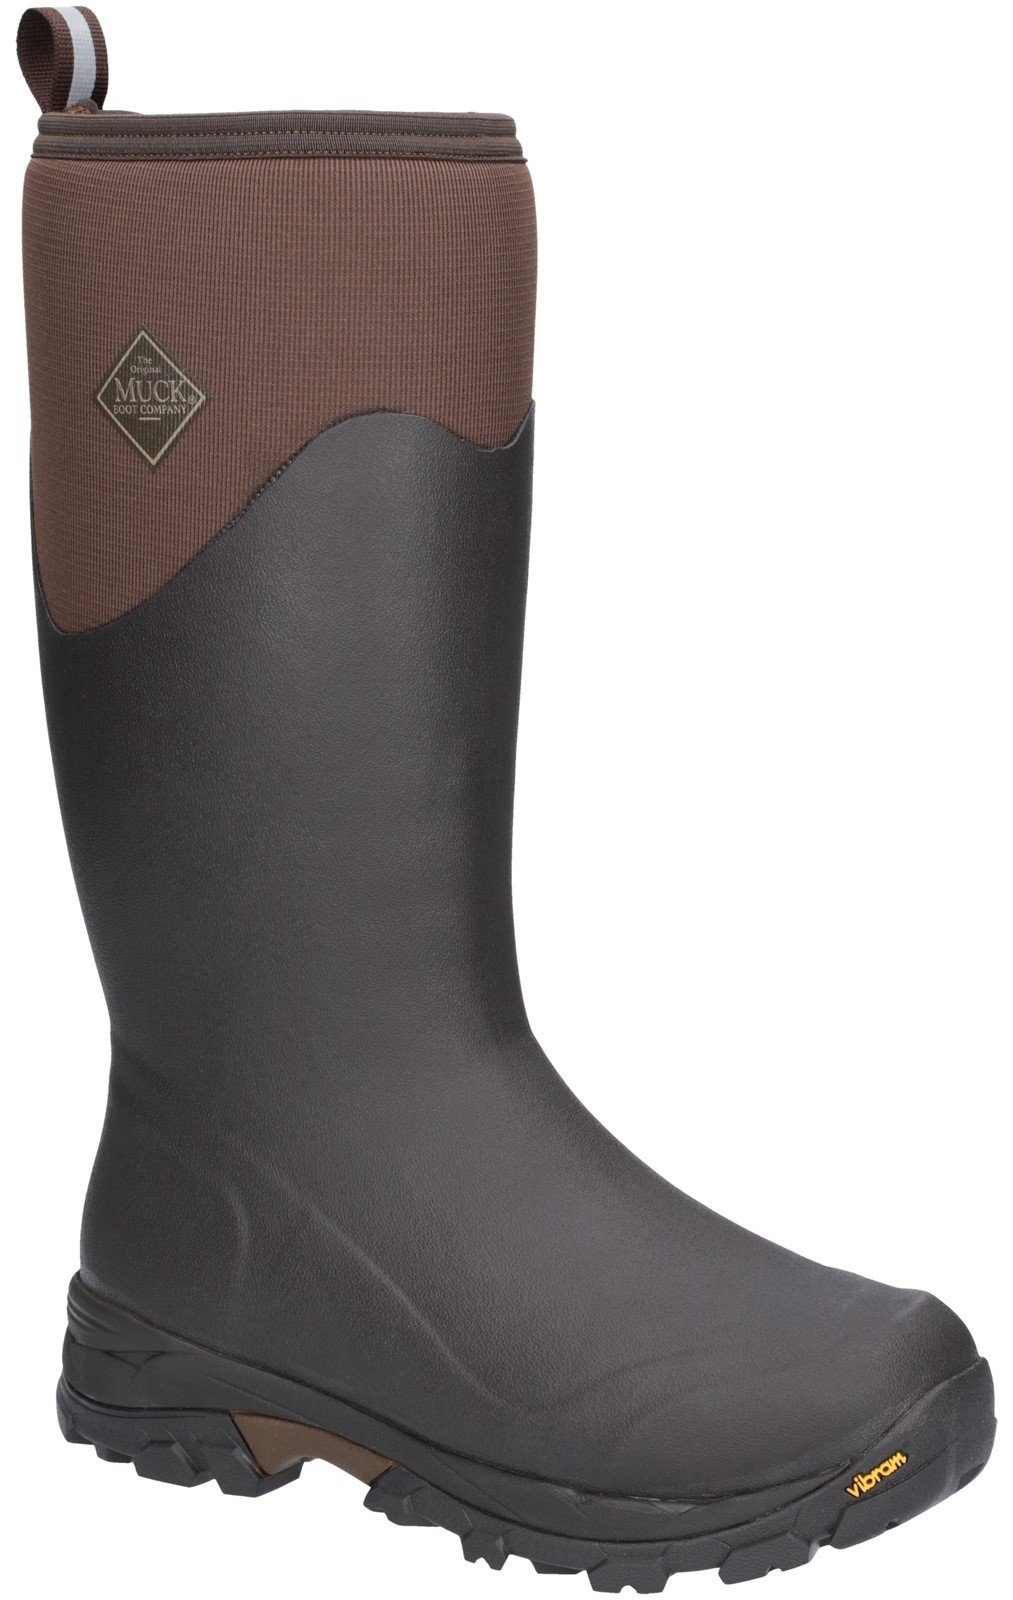 Muck Boots Unisex Arctic Ice Tall Extreme Conditions Boot Various Colours 26030 - Brown 7